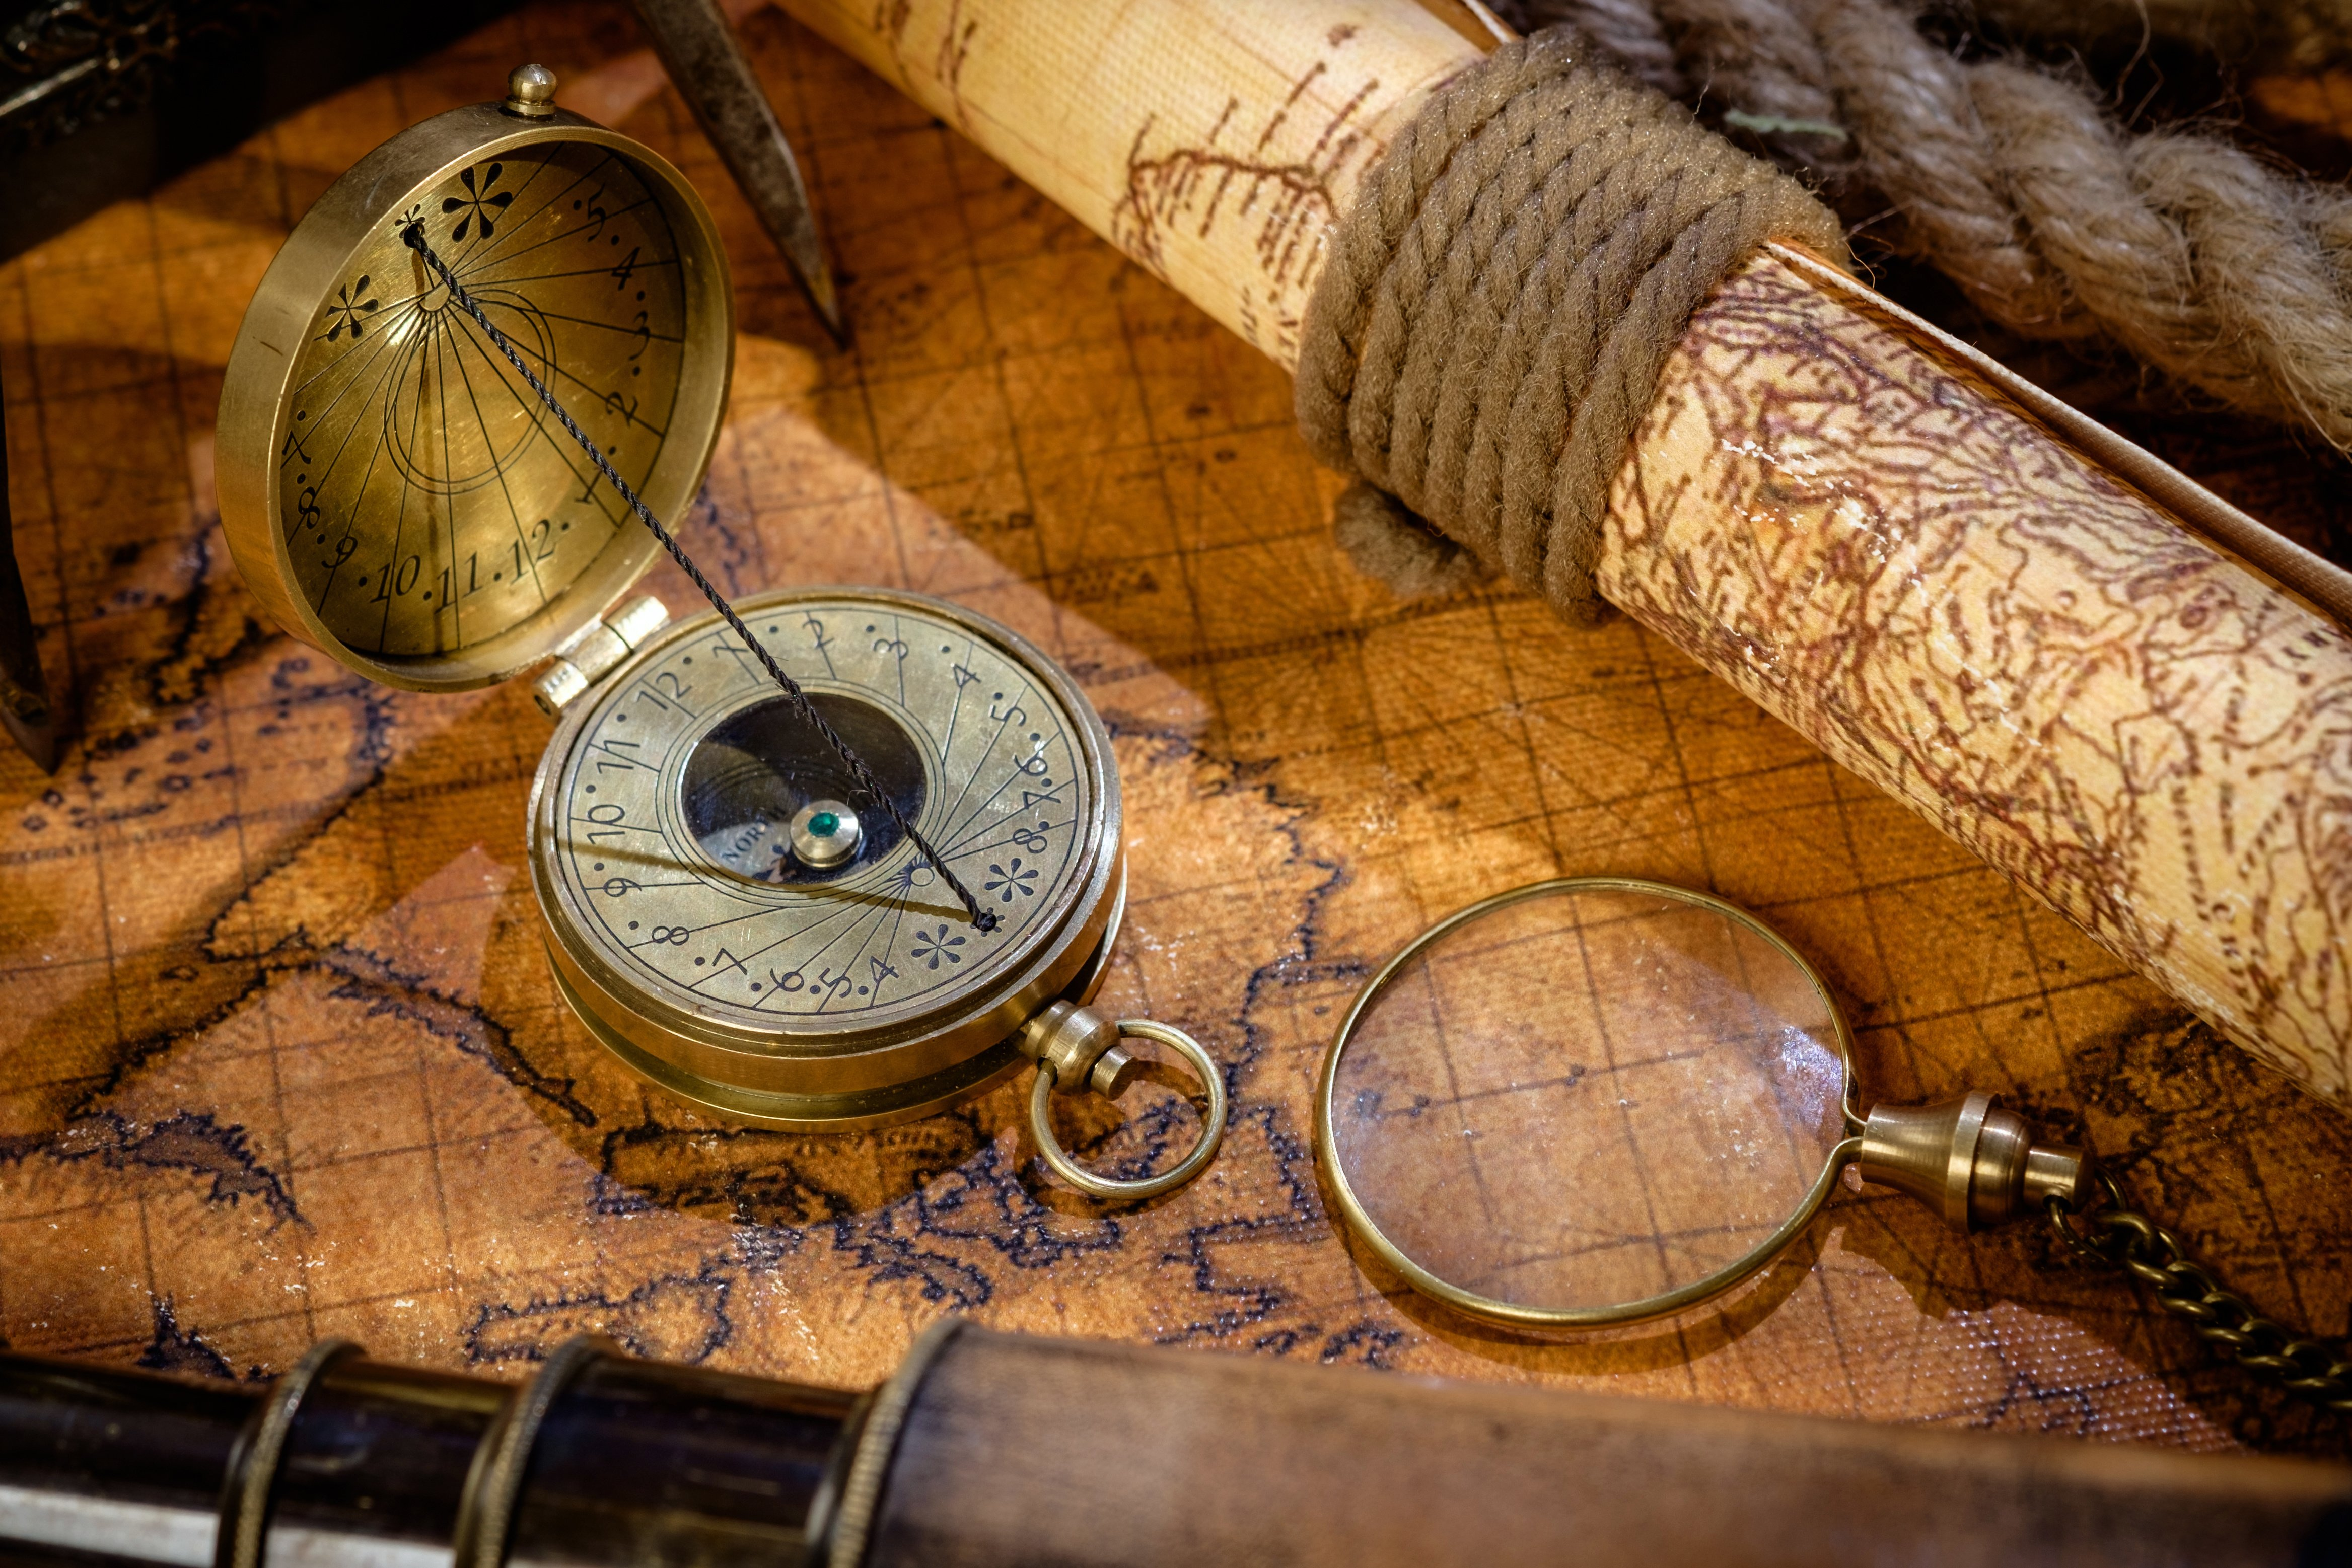 Old vintage retro compass, spyglass and magnifying glass on ancient world map. Vintage still life. Travel geography navigation concept background.